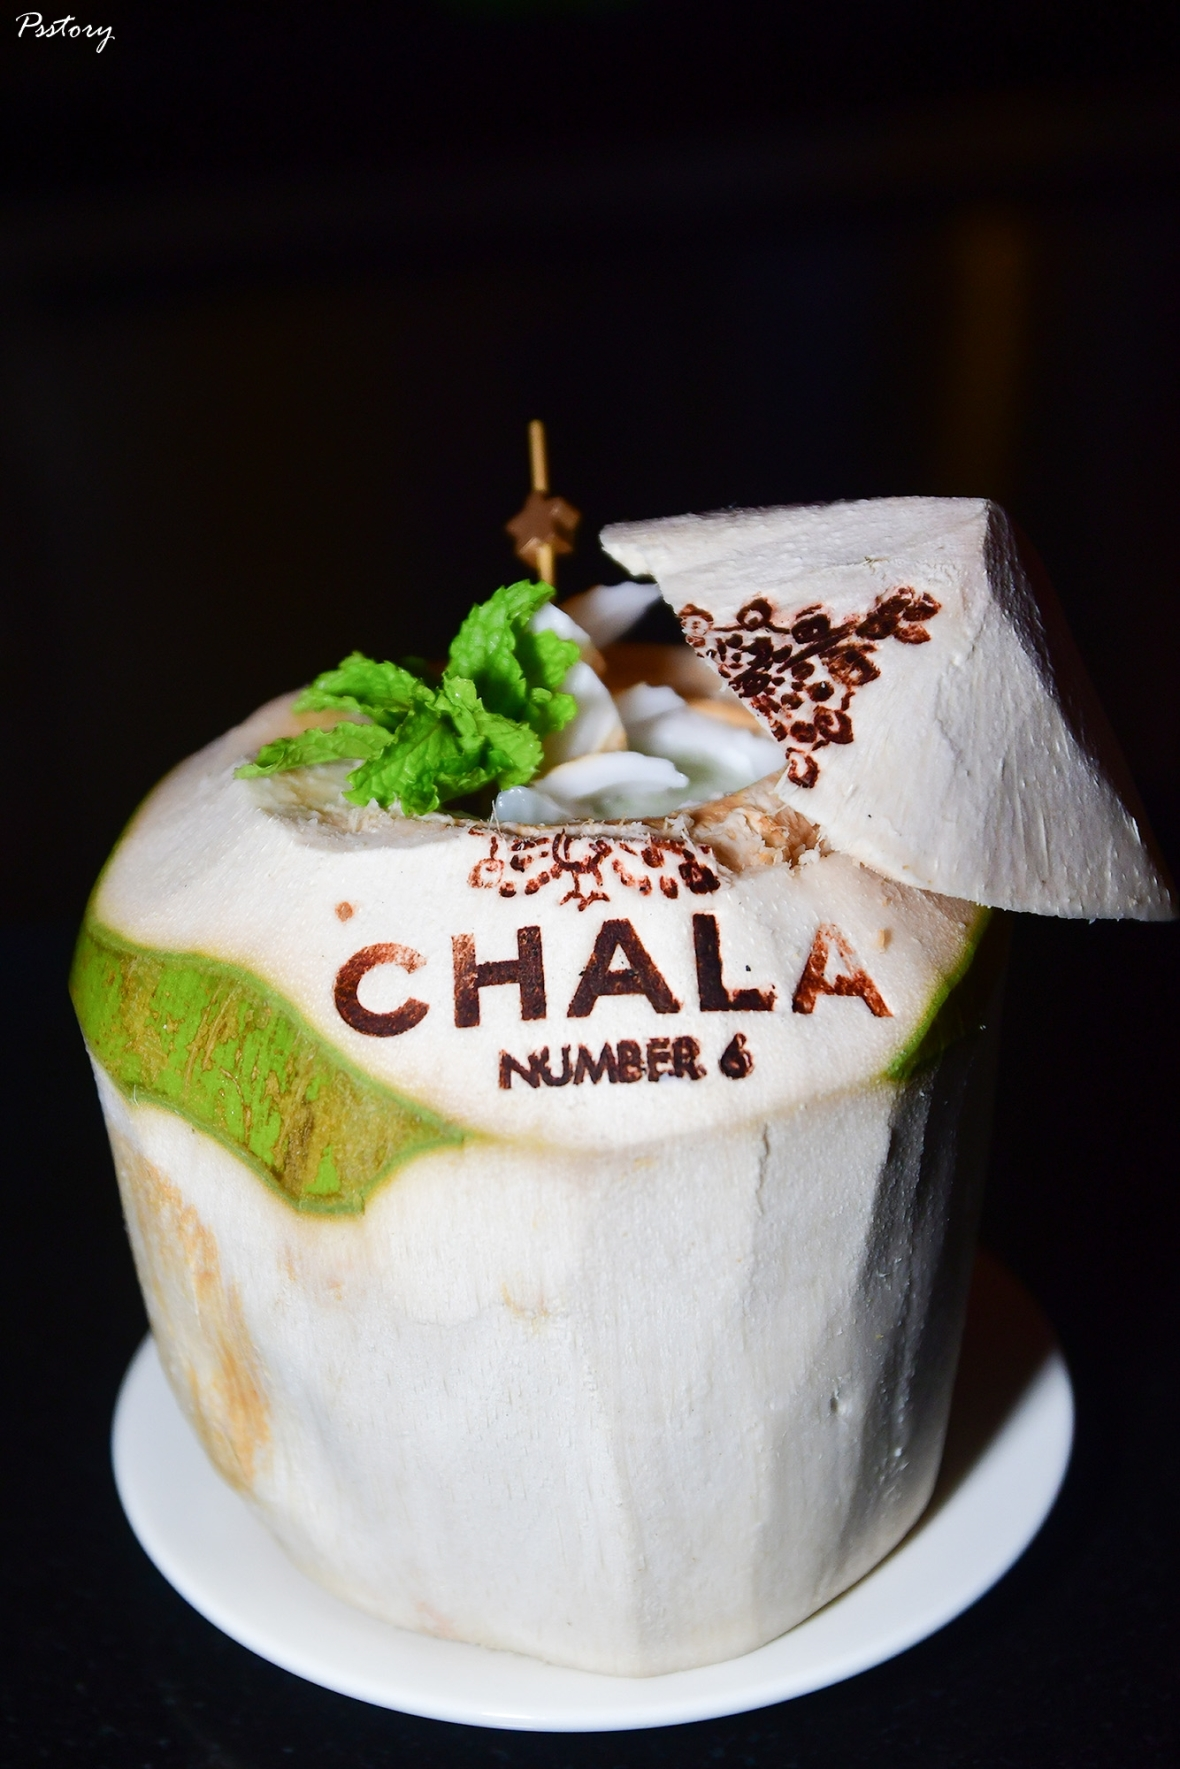 Chala Number 6 (108)